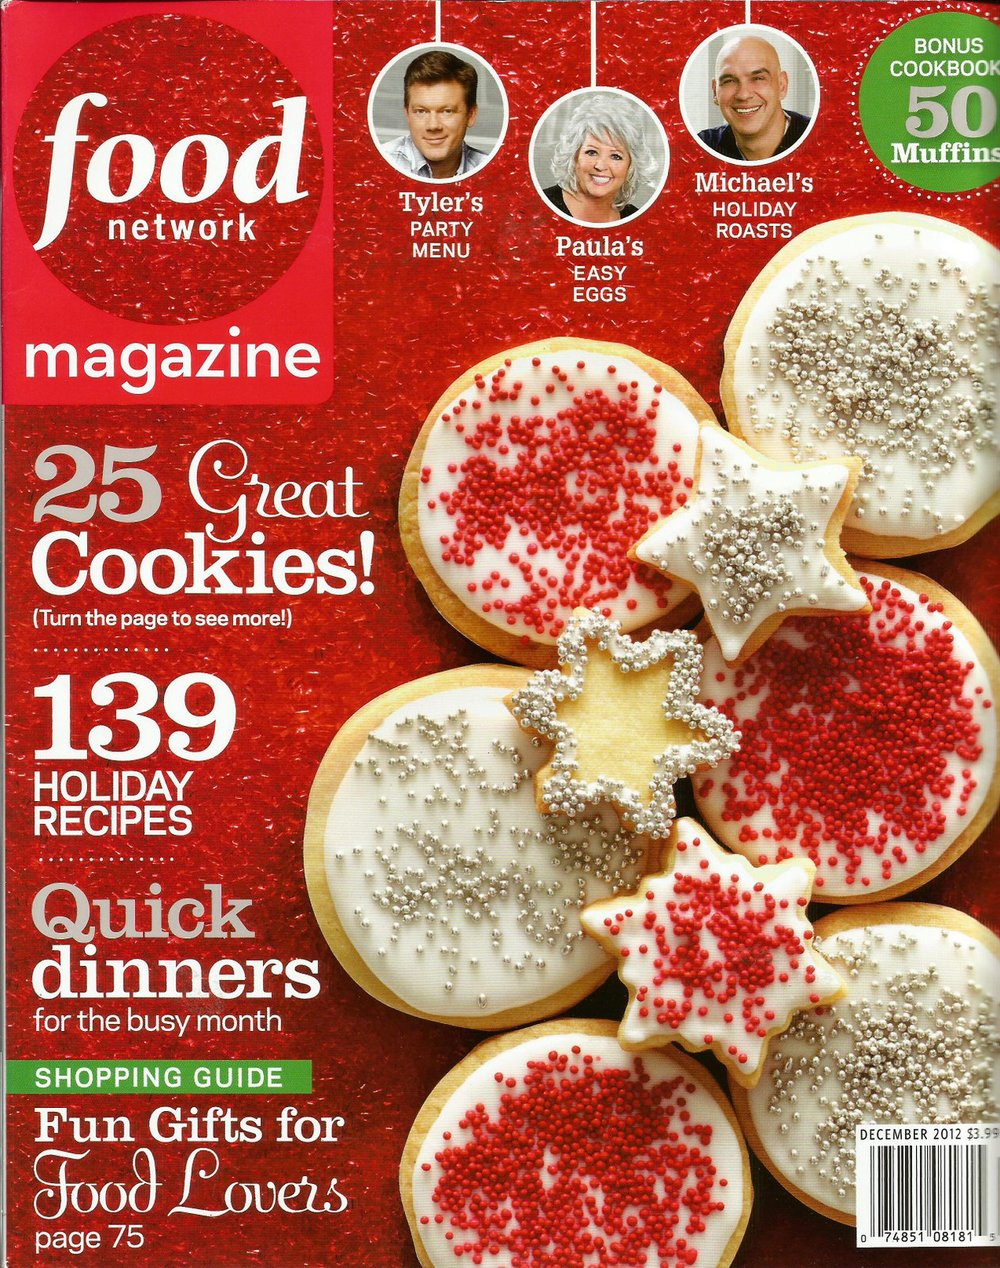 2012_dec_foodnetwork_1.jpg